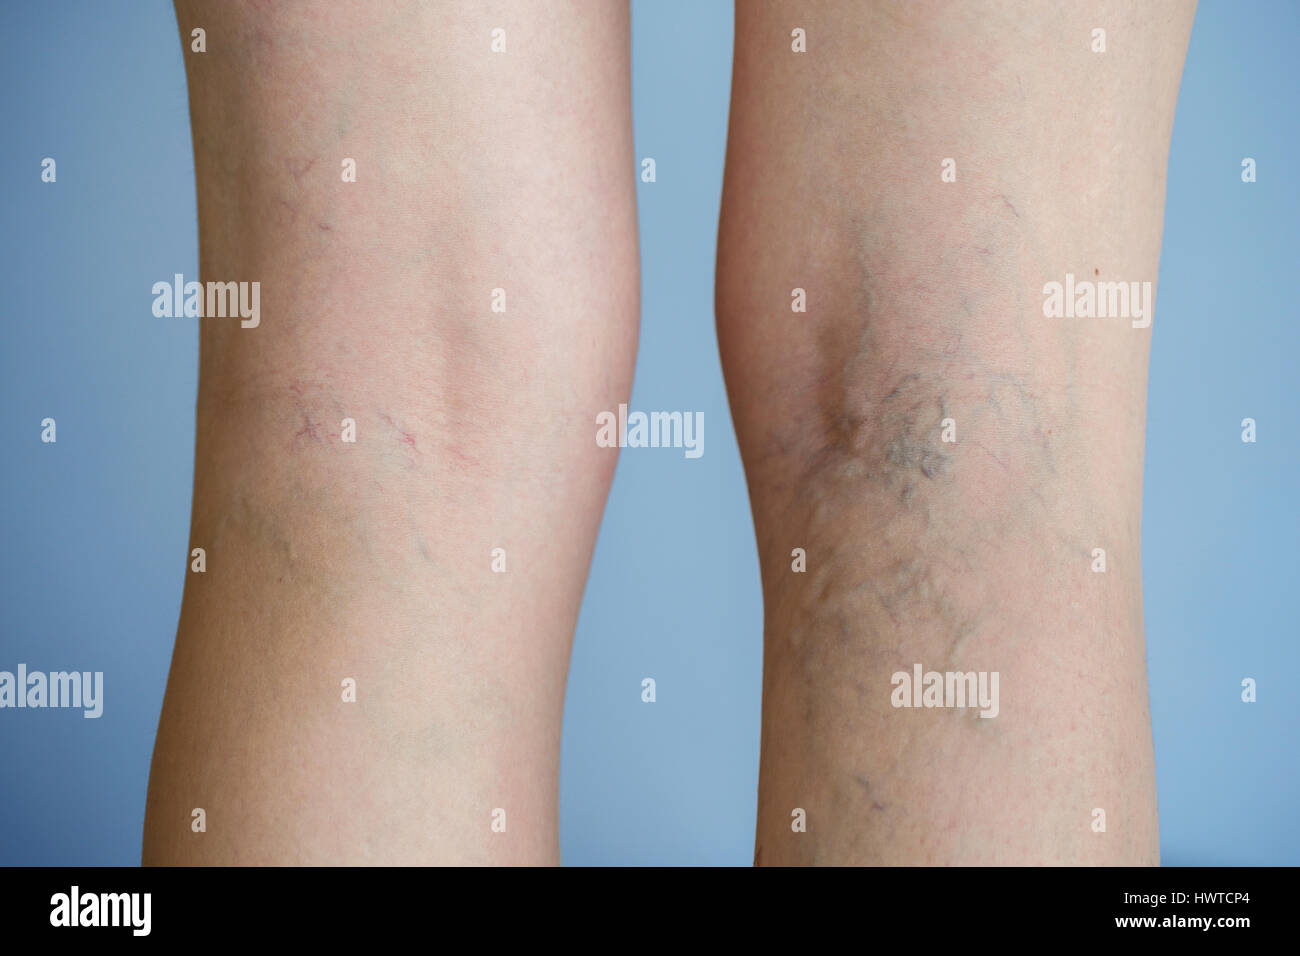 Painful varicose veins (spider veins, varices) on a severely affected leg. Ageing, old age disease, aesthetic problem - Stock Image